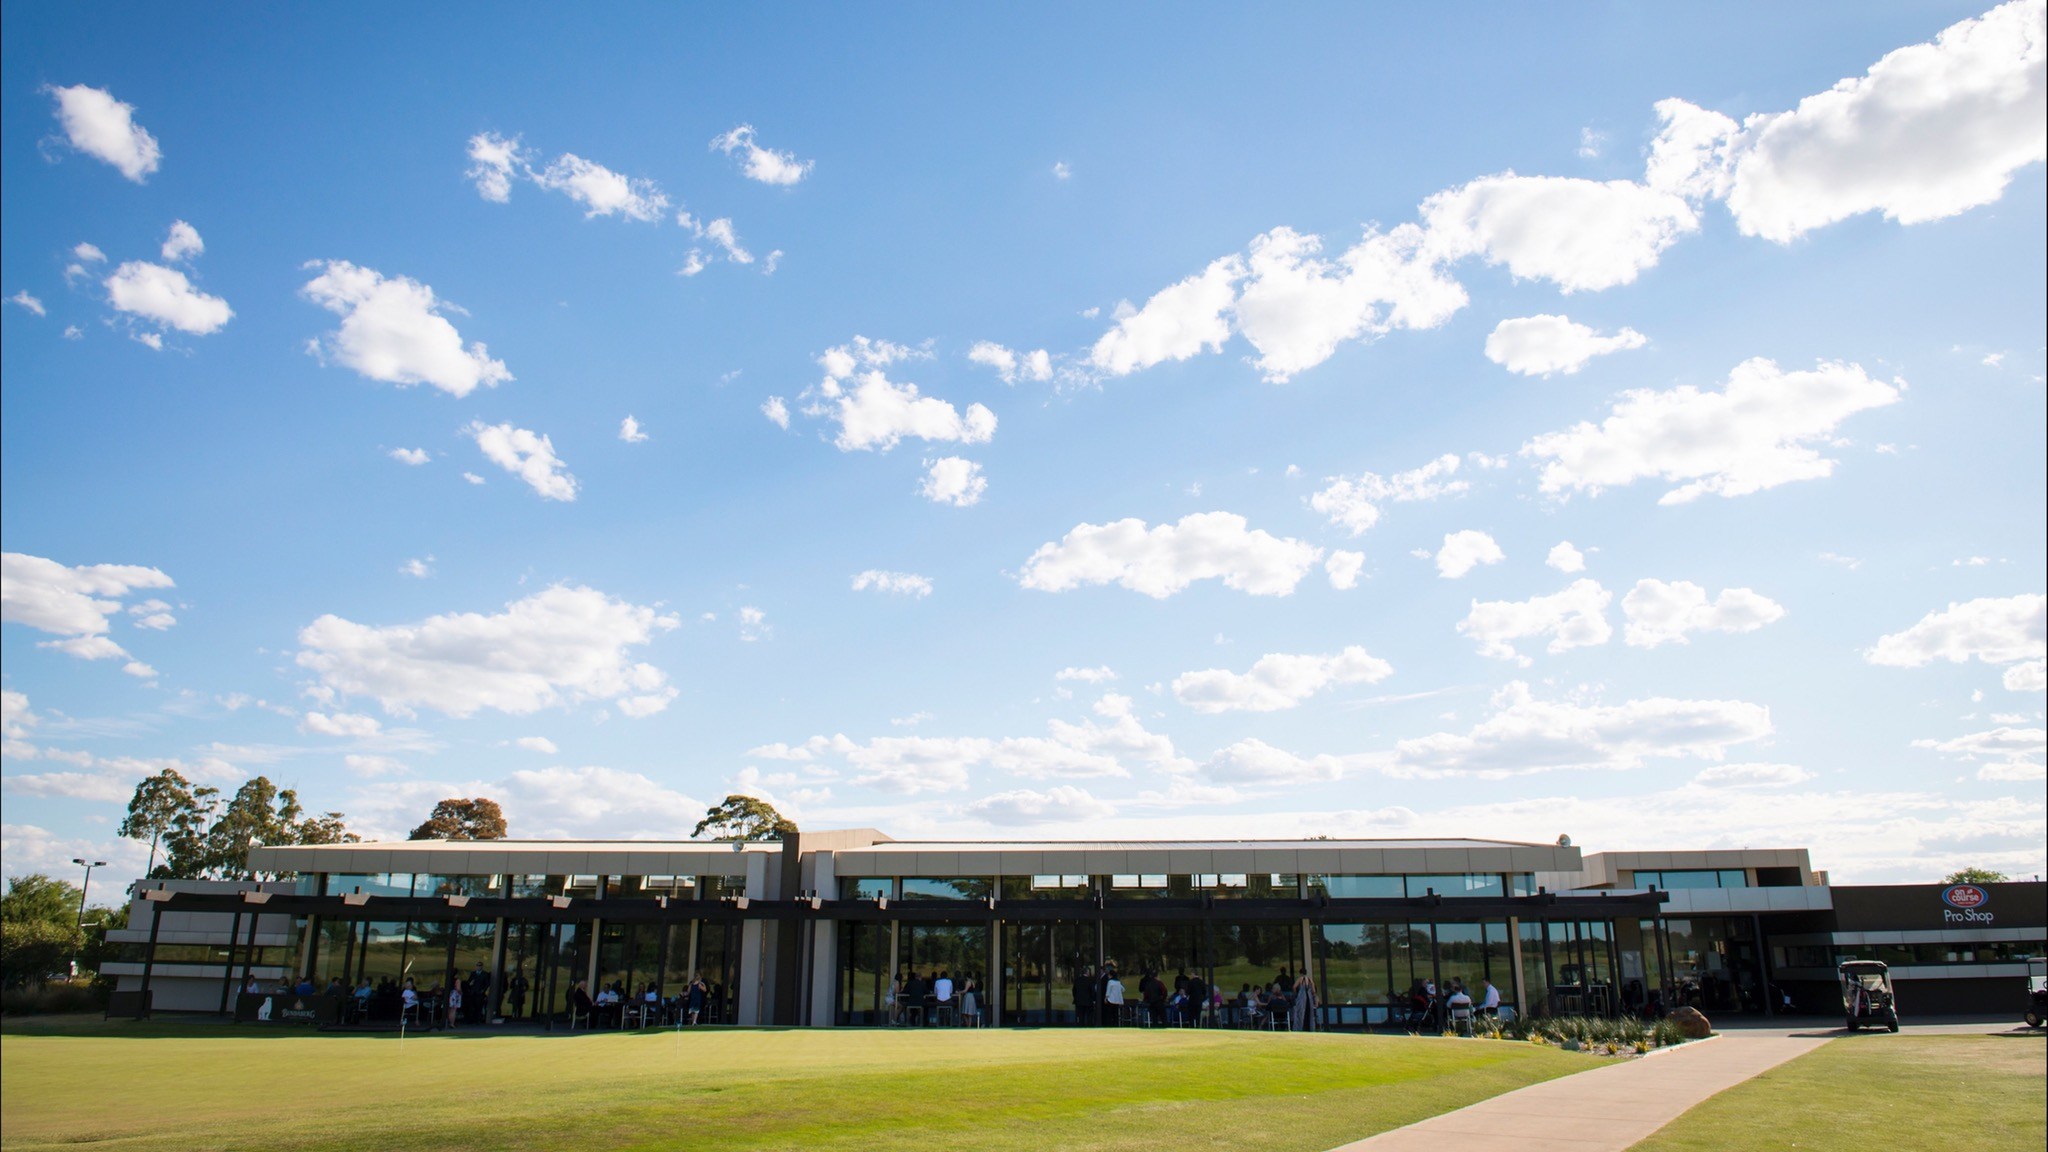 The Ballarat Golf Club